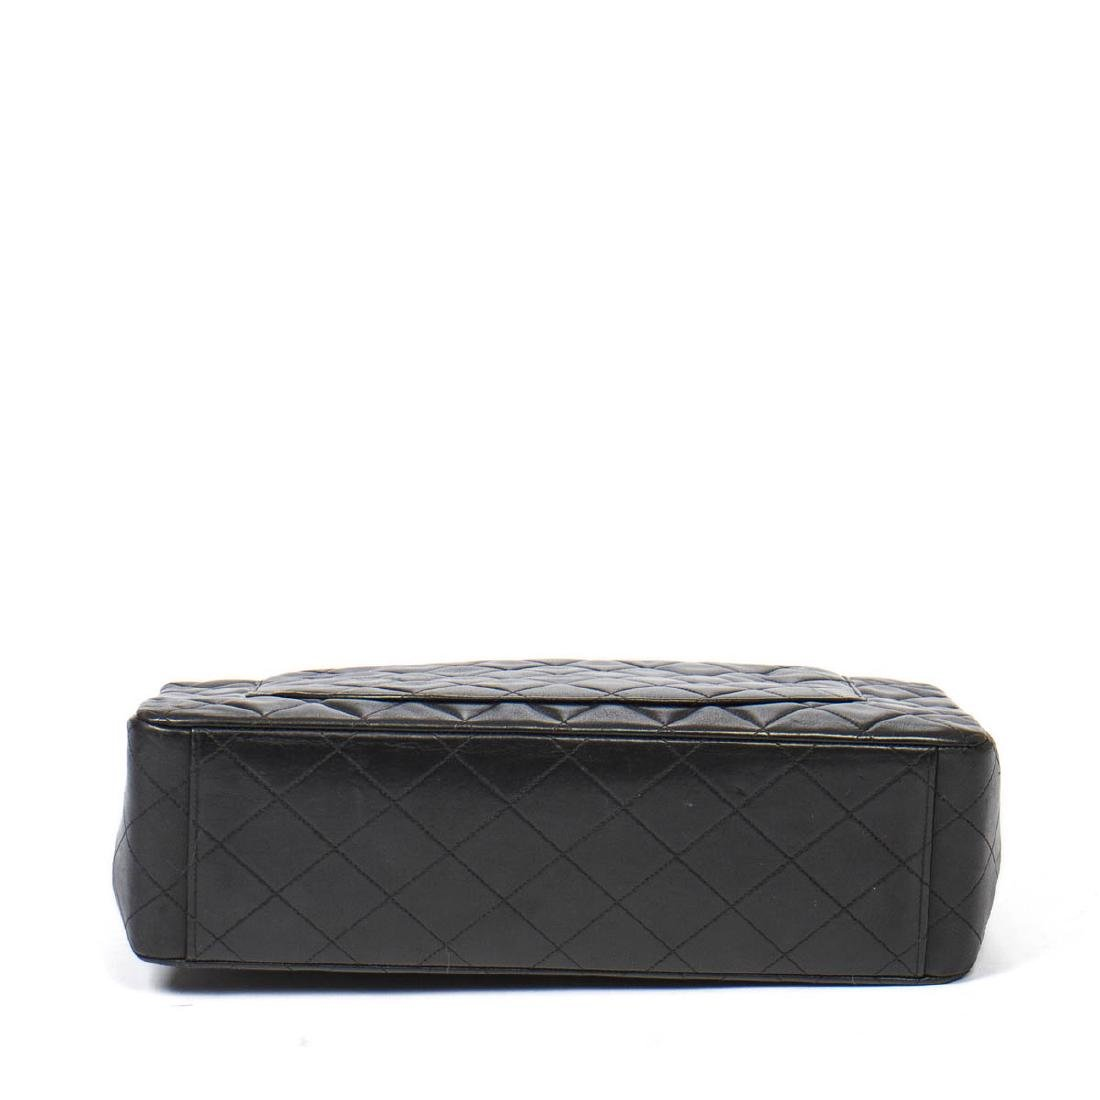 Chanel Maxi Jumbo in Black Quilted Leather - 6